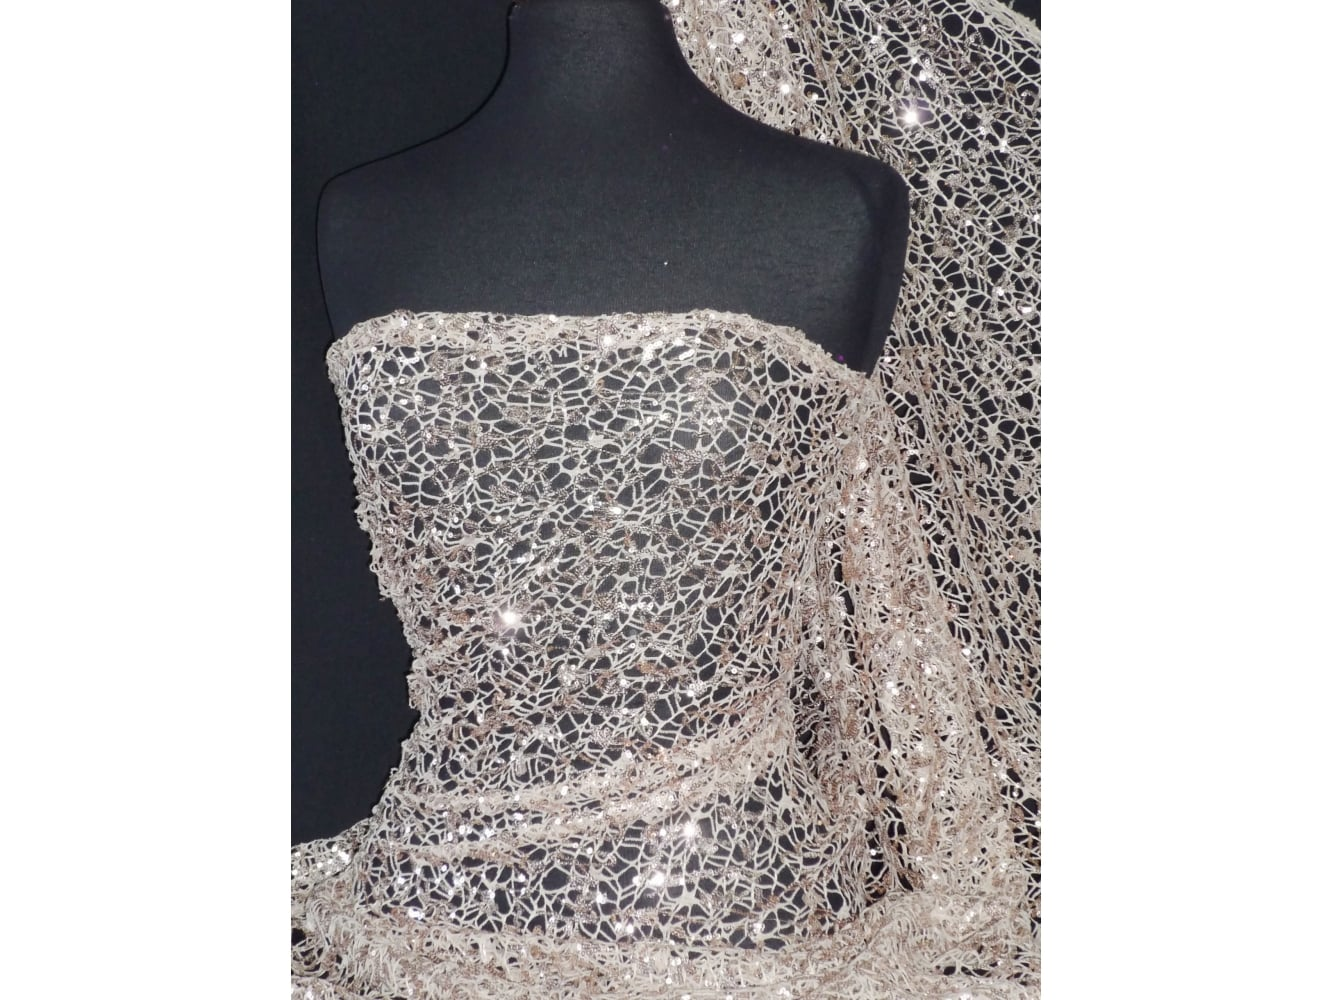 Crochet Knit Spider Web Sequin Lace Fabric- Rose Gold